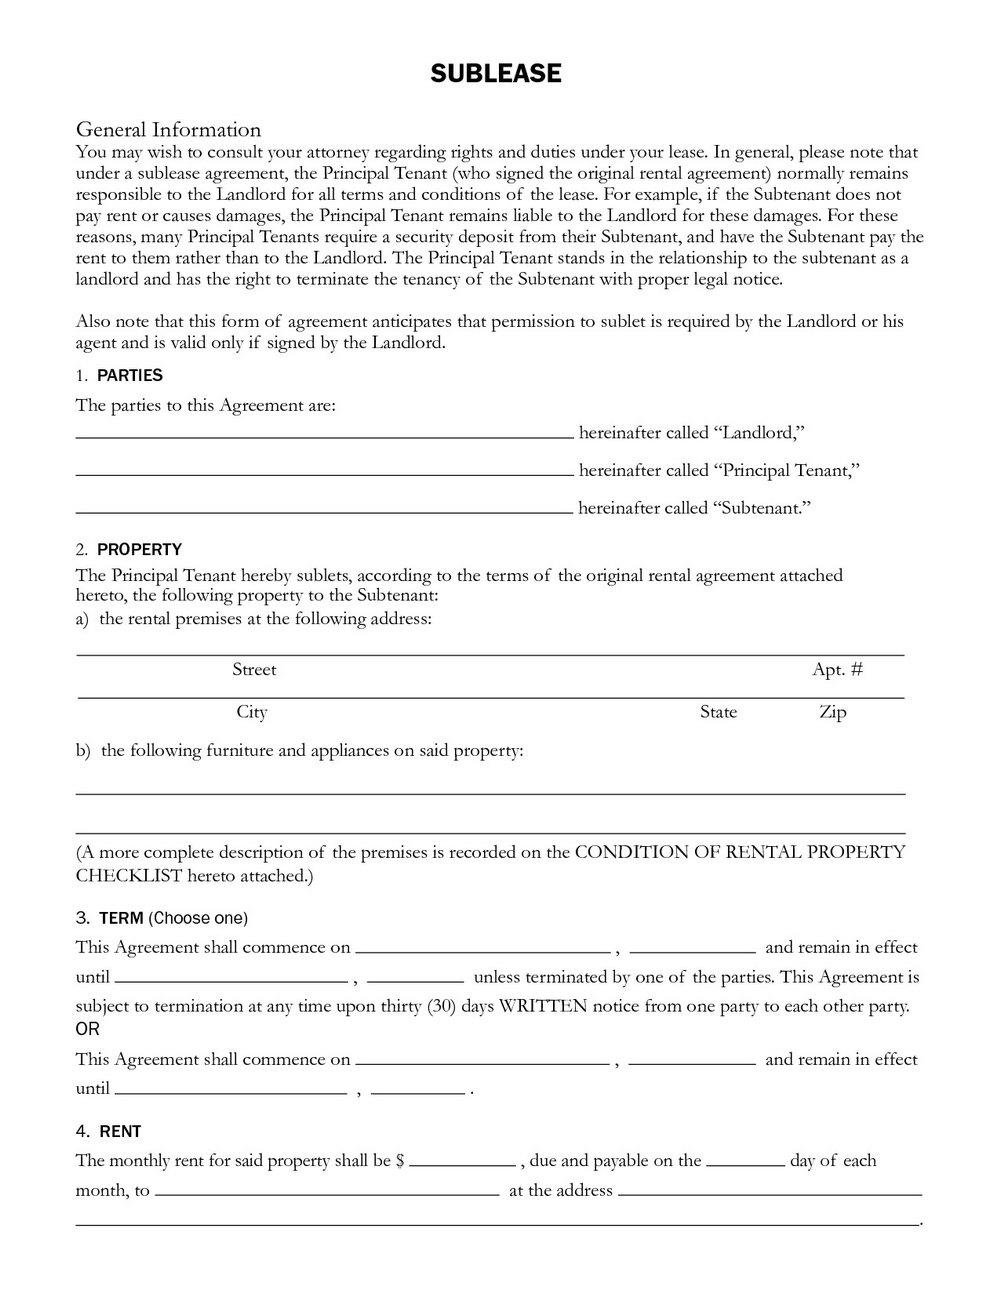 Car Sublease Agreement Template